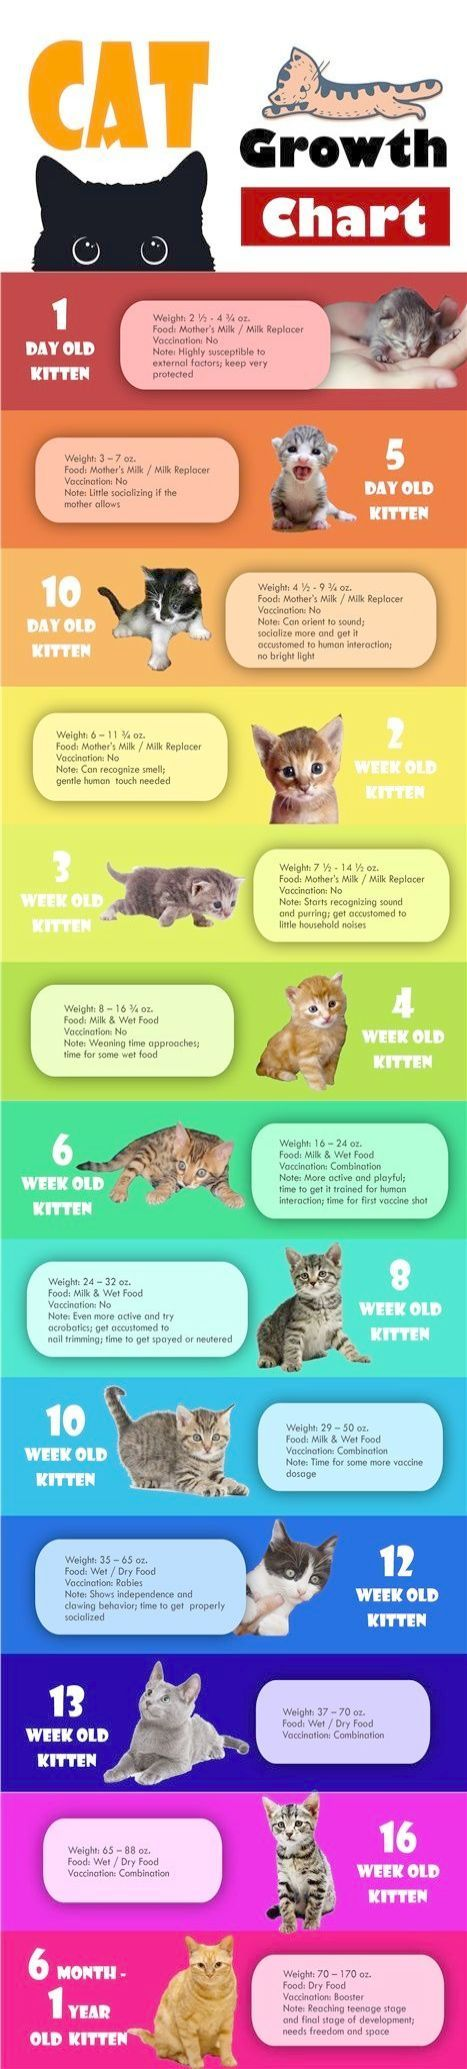 Cat Has Kittens Cats And Kittens Pictures Cat Infographic Kitten Kitten Care